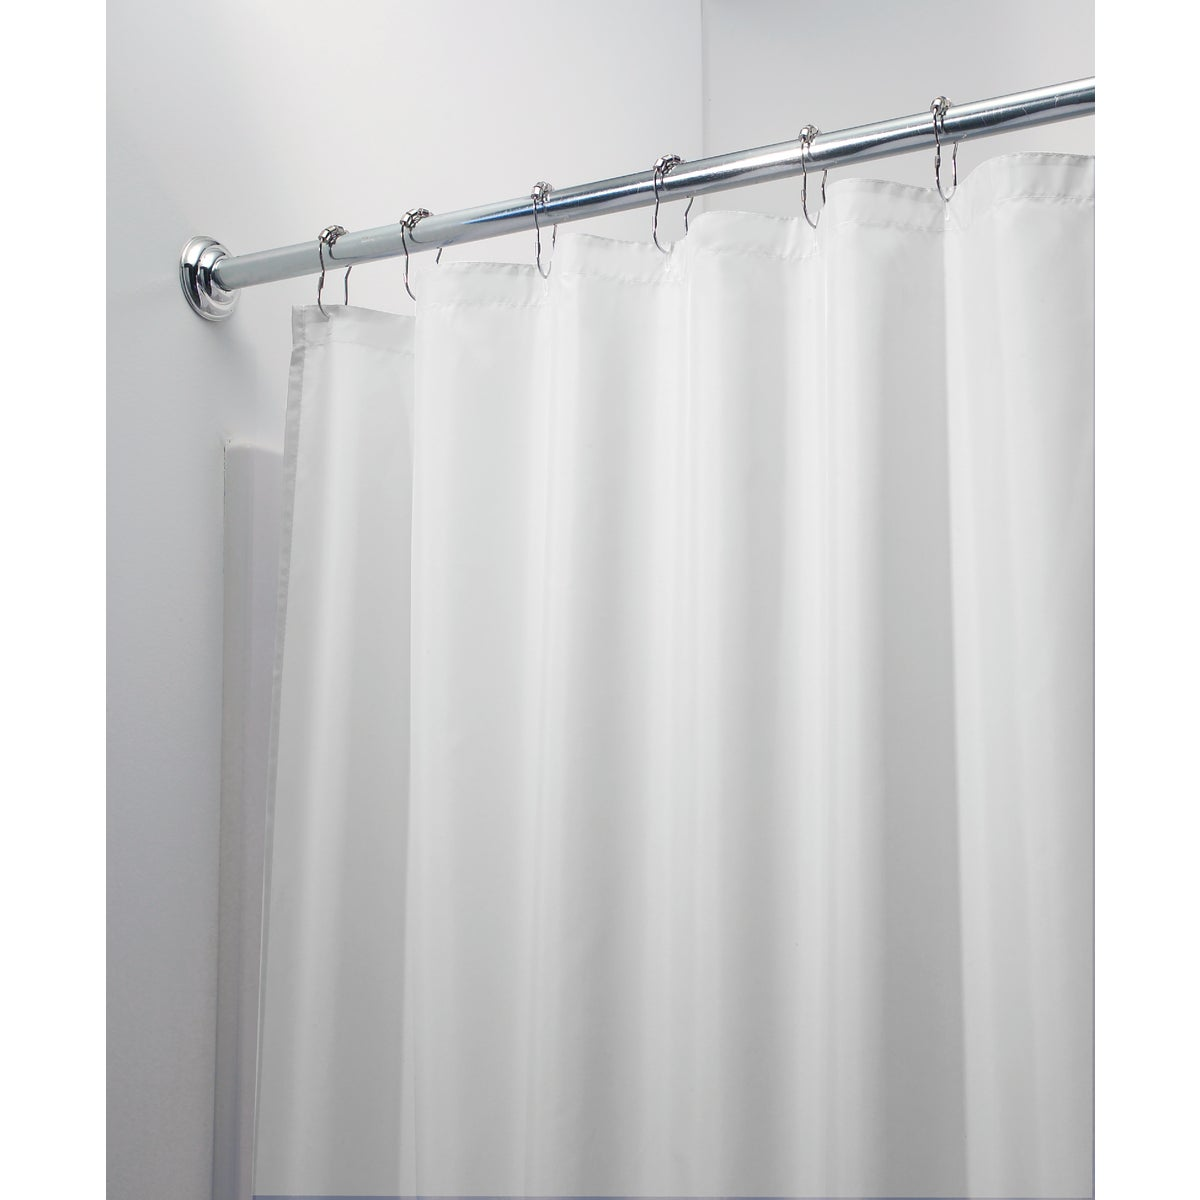 WHT POLY SHOWER CURTAIN